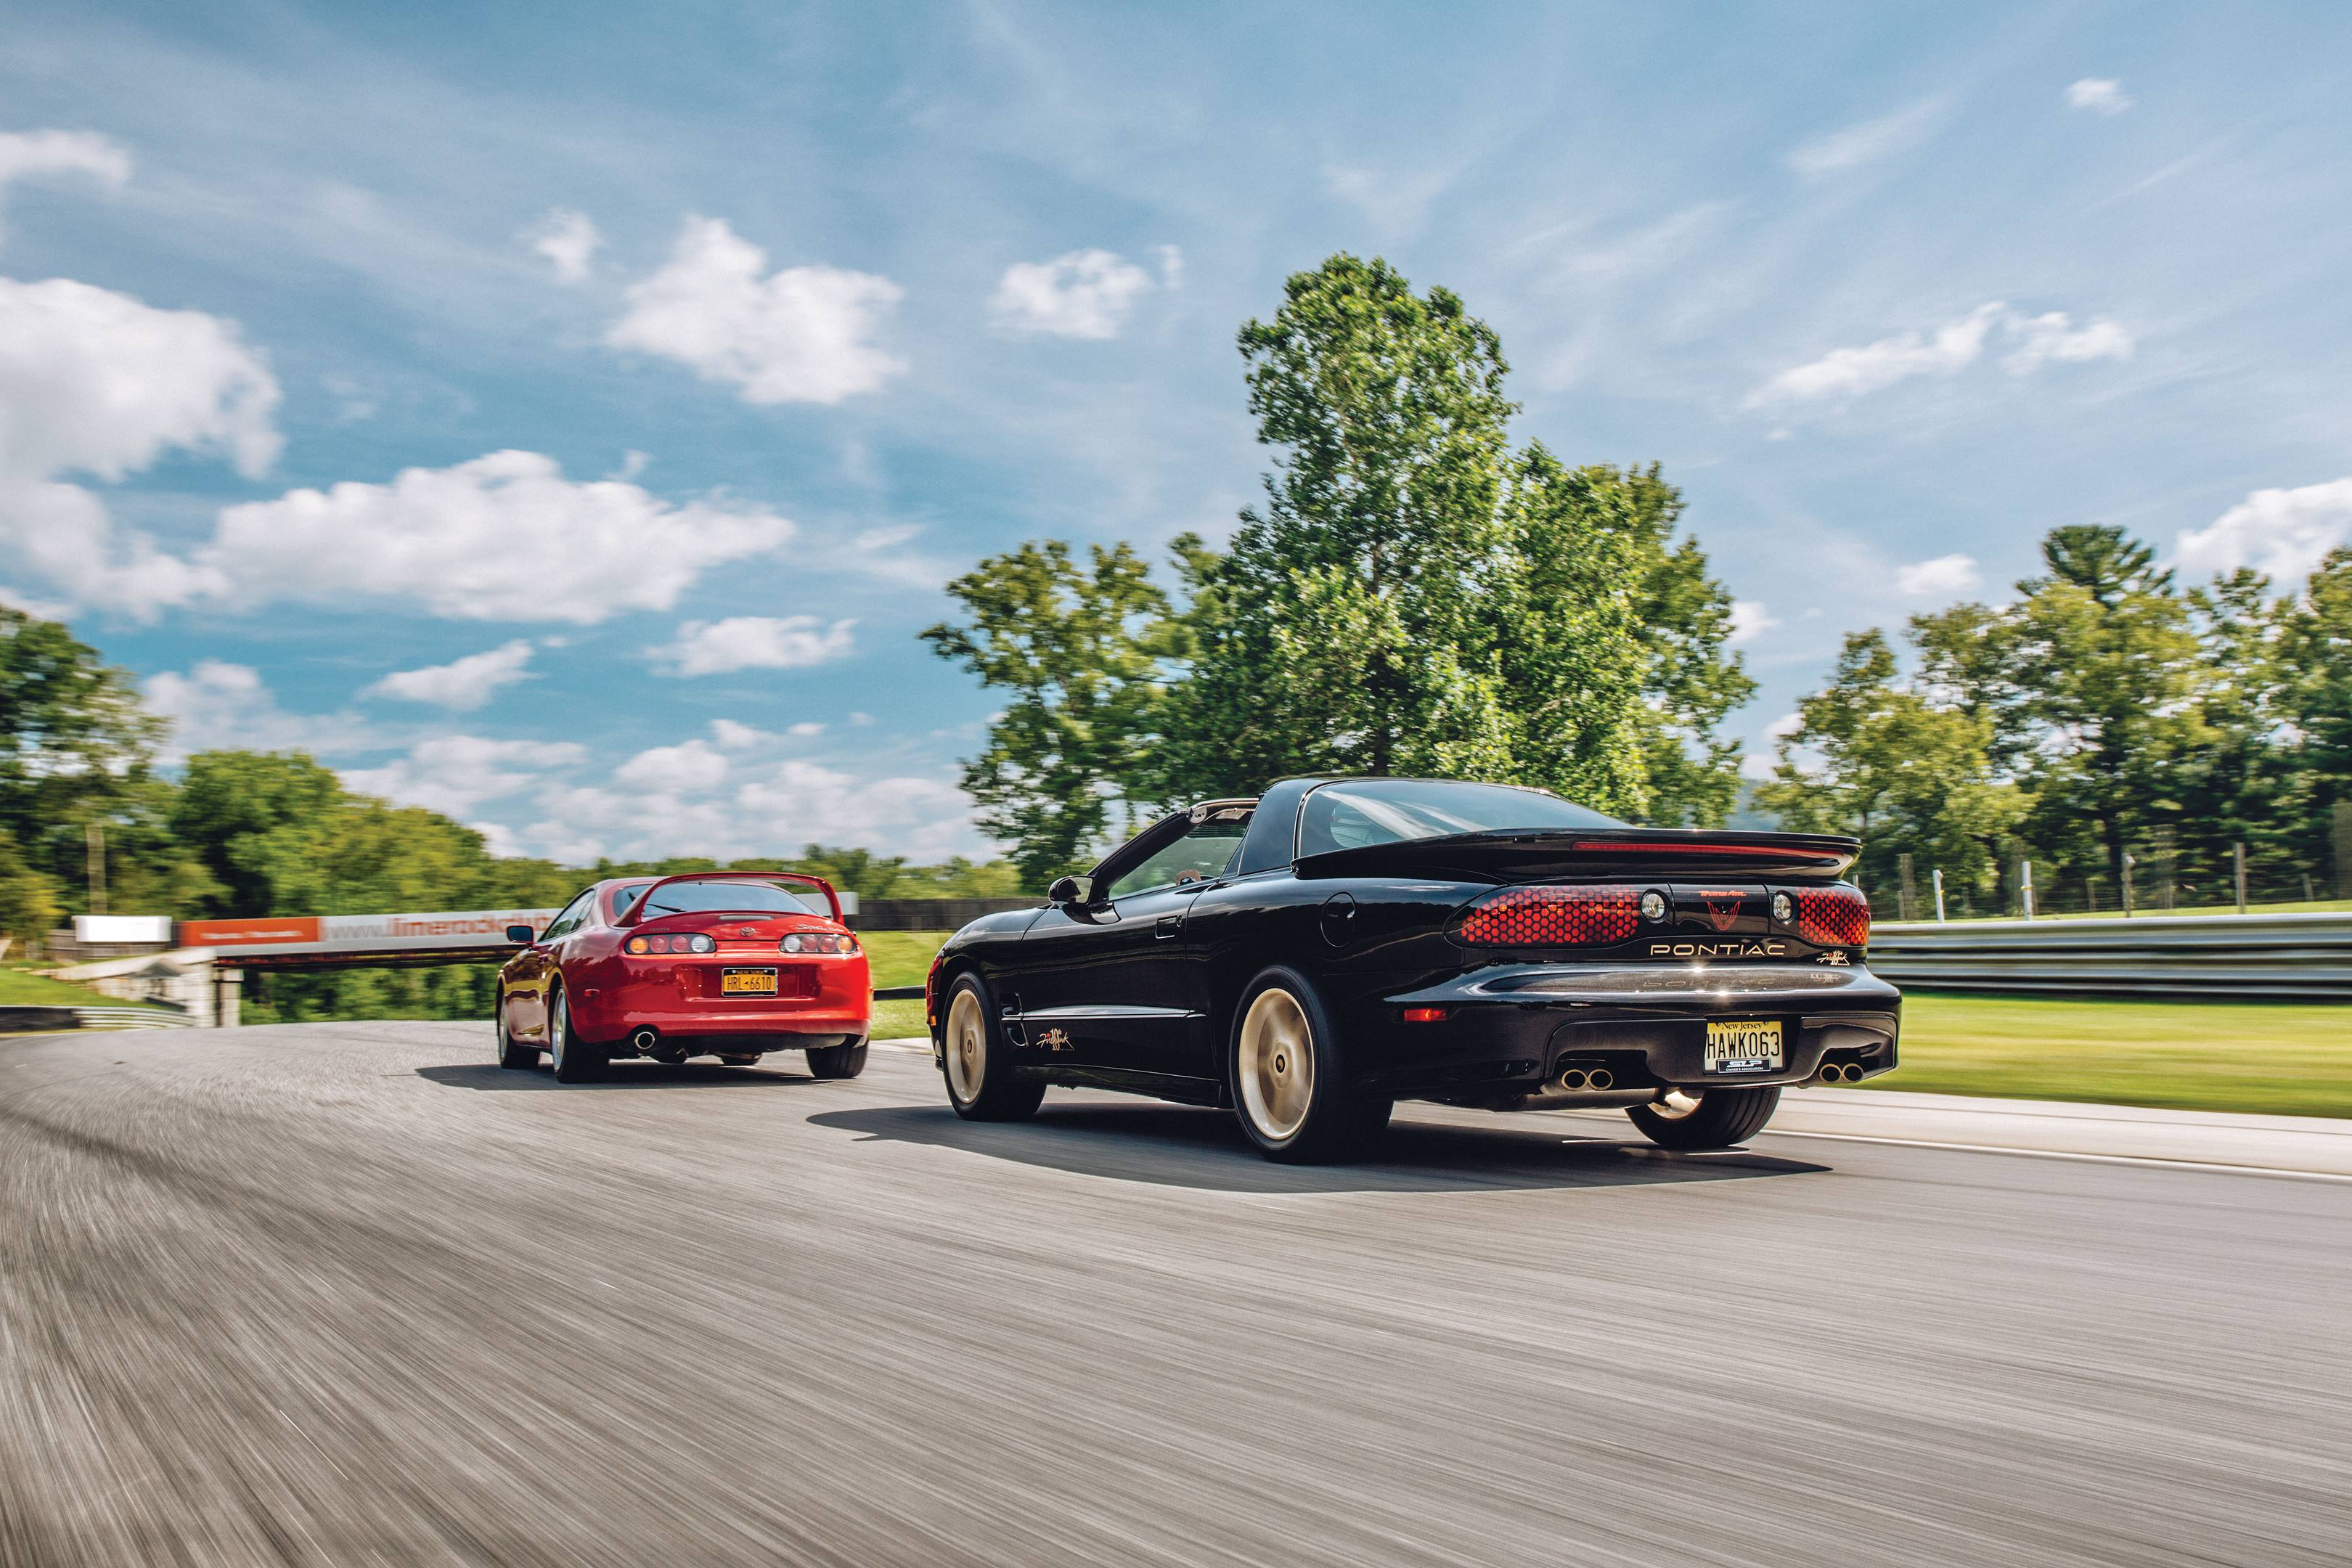 Toyota Supra Turbo and Pontiac Firebird Firehawk